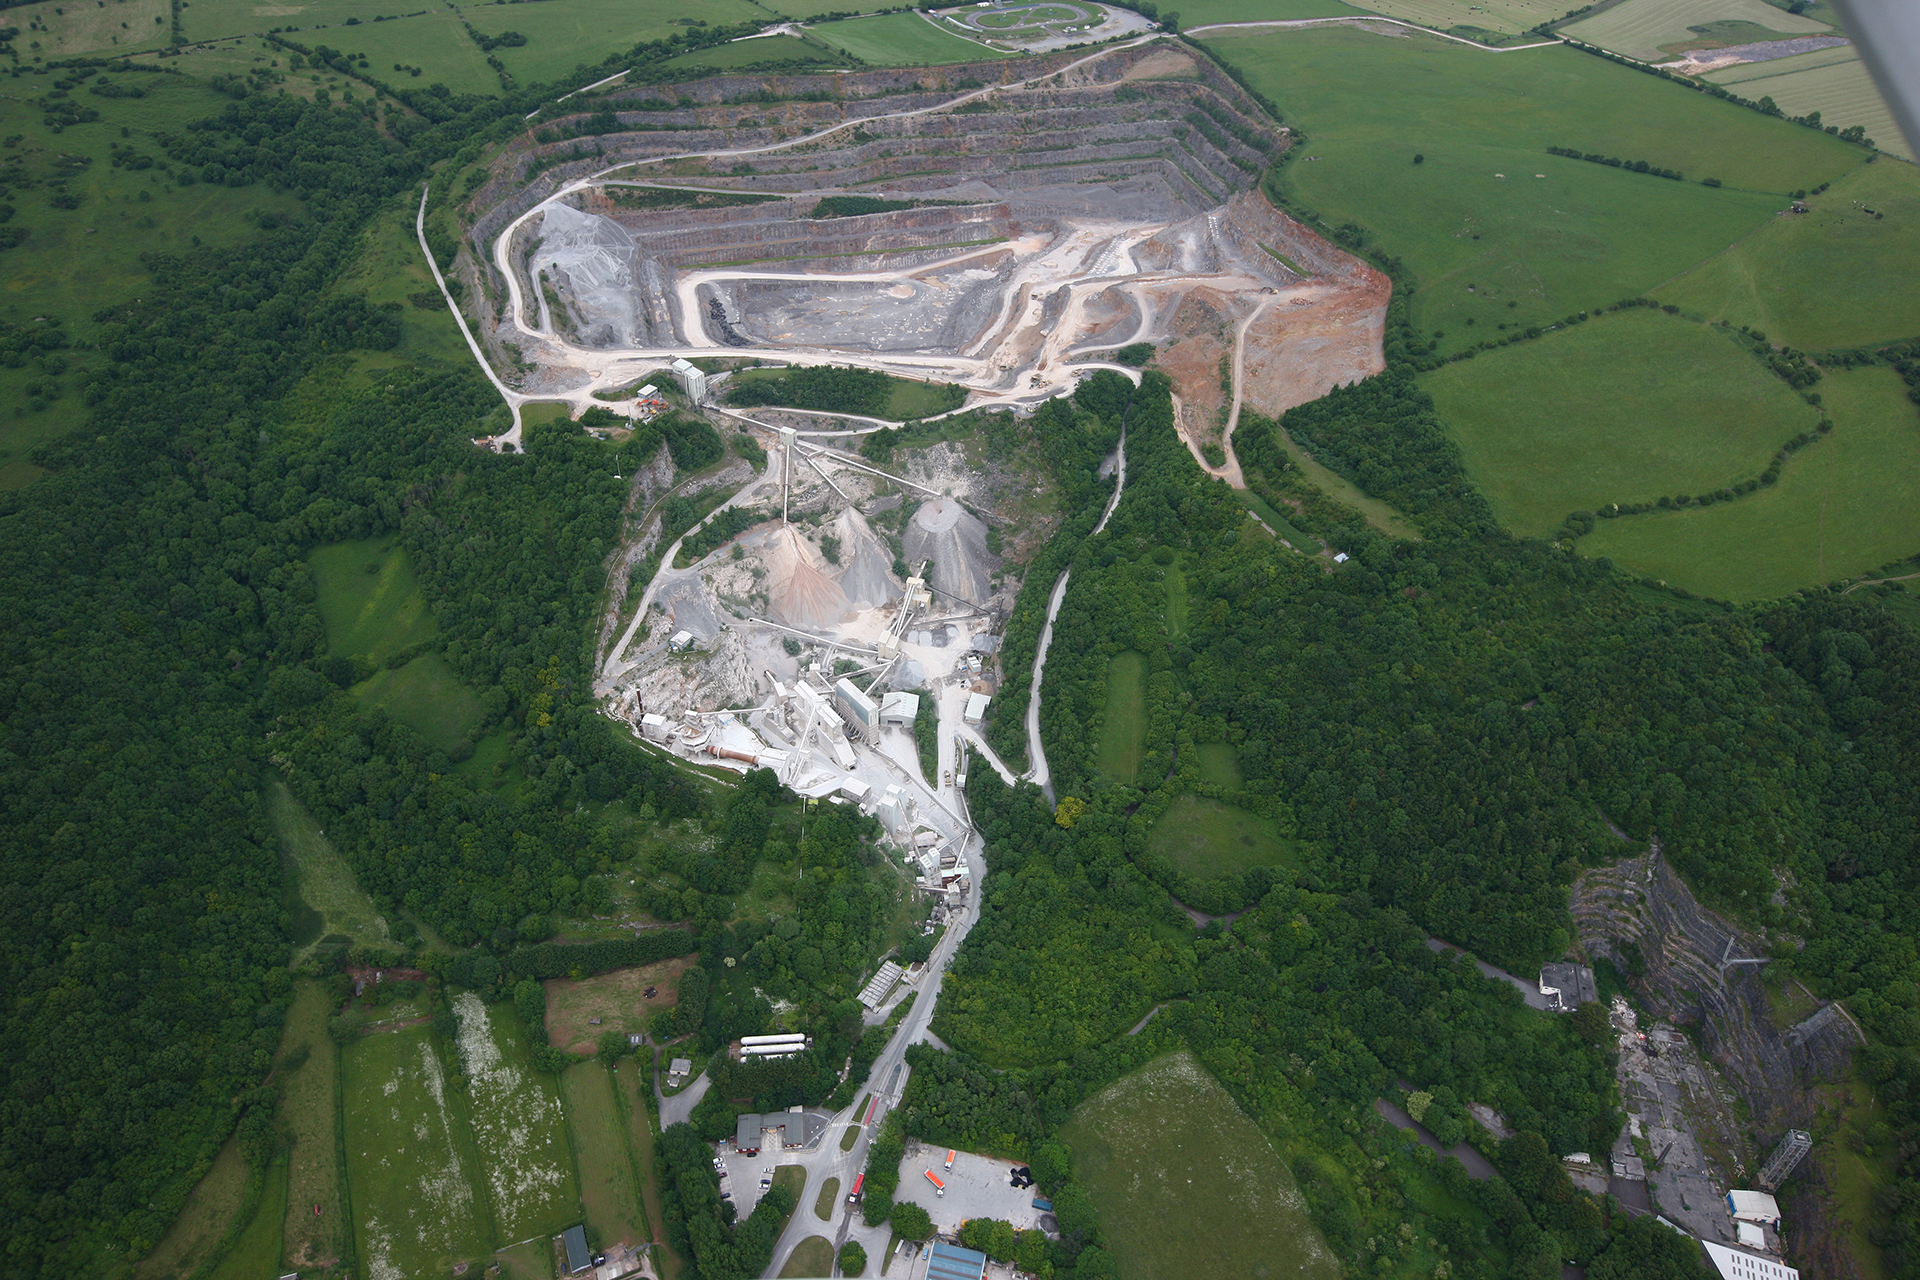 batts combe quarry community page